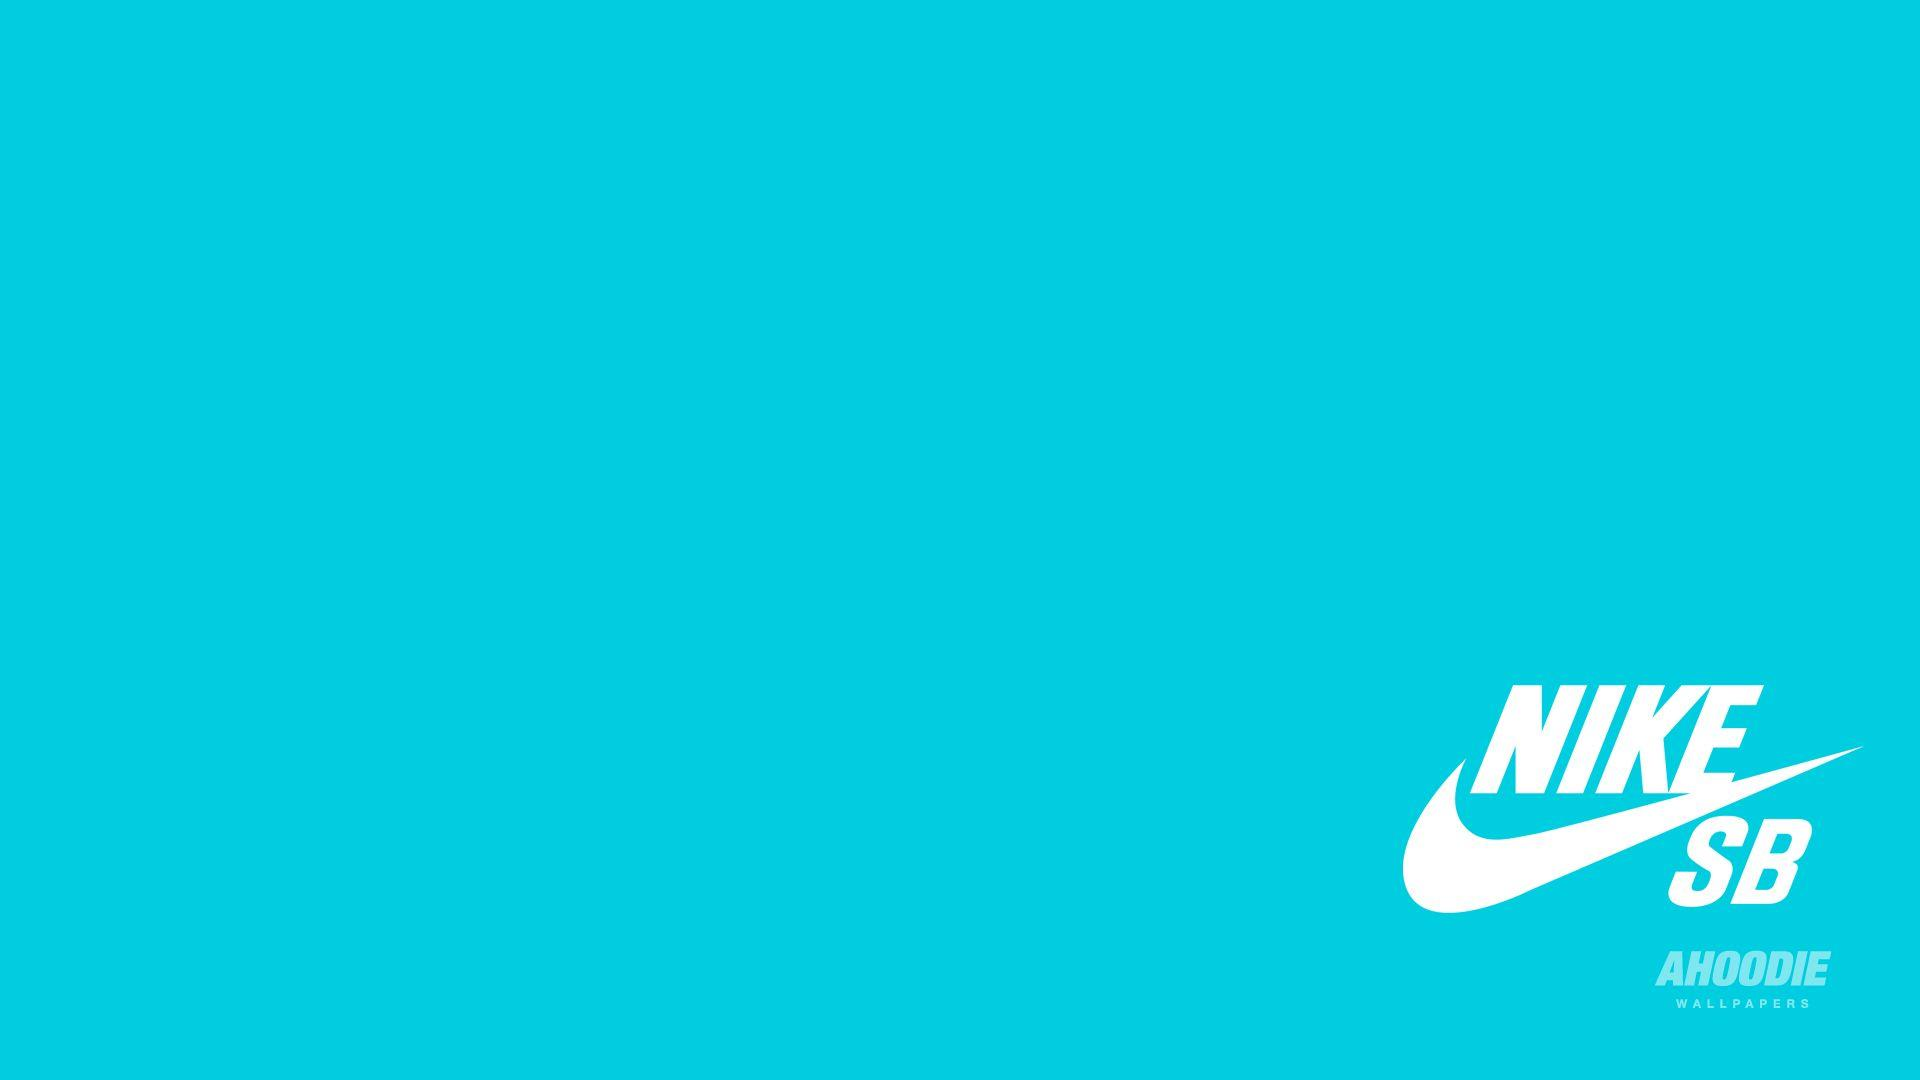 nike sb logo wallpapers wallpaper cave